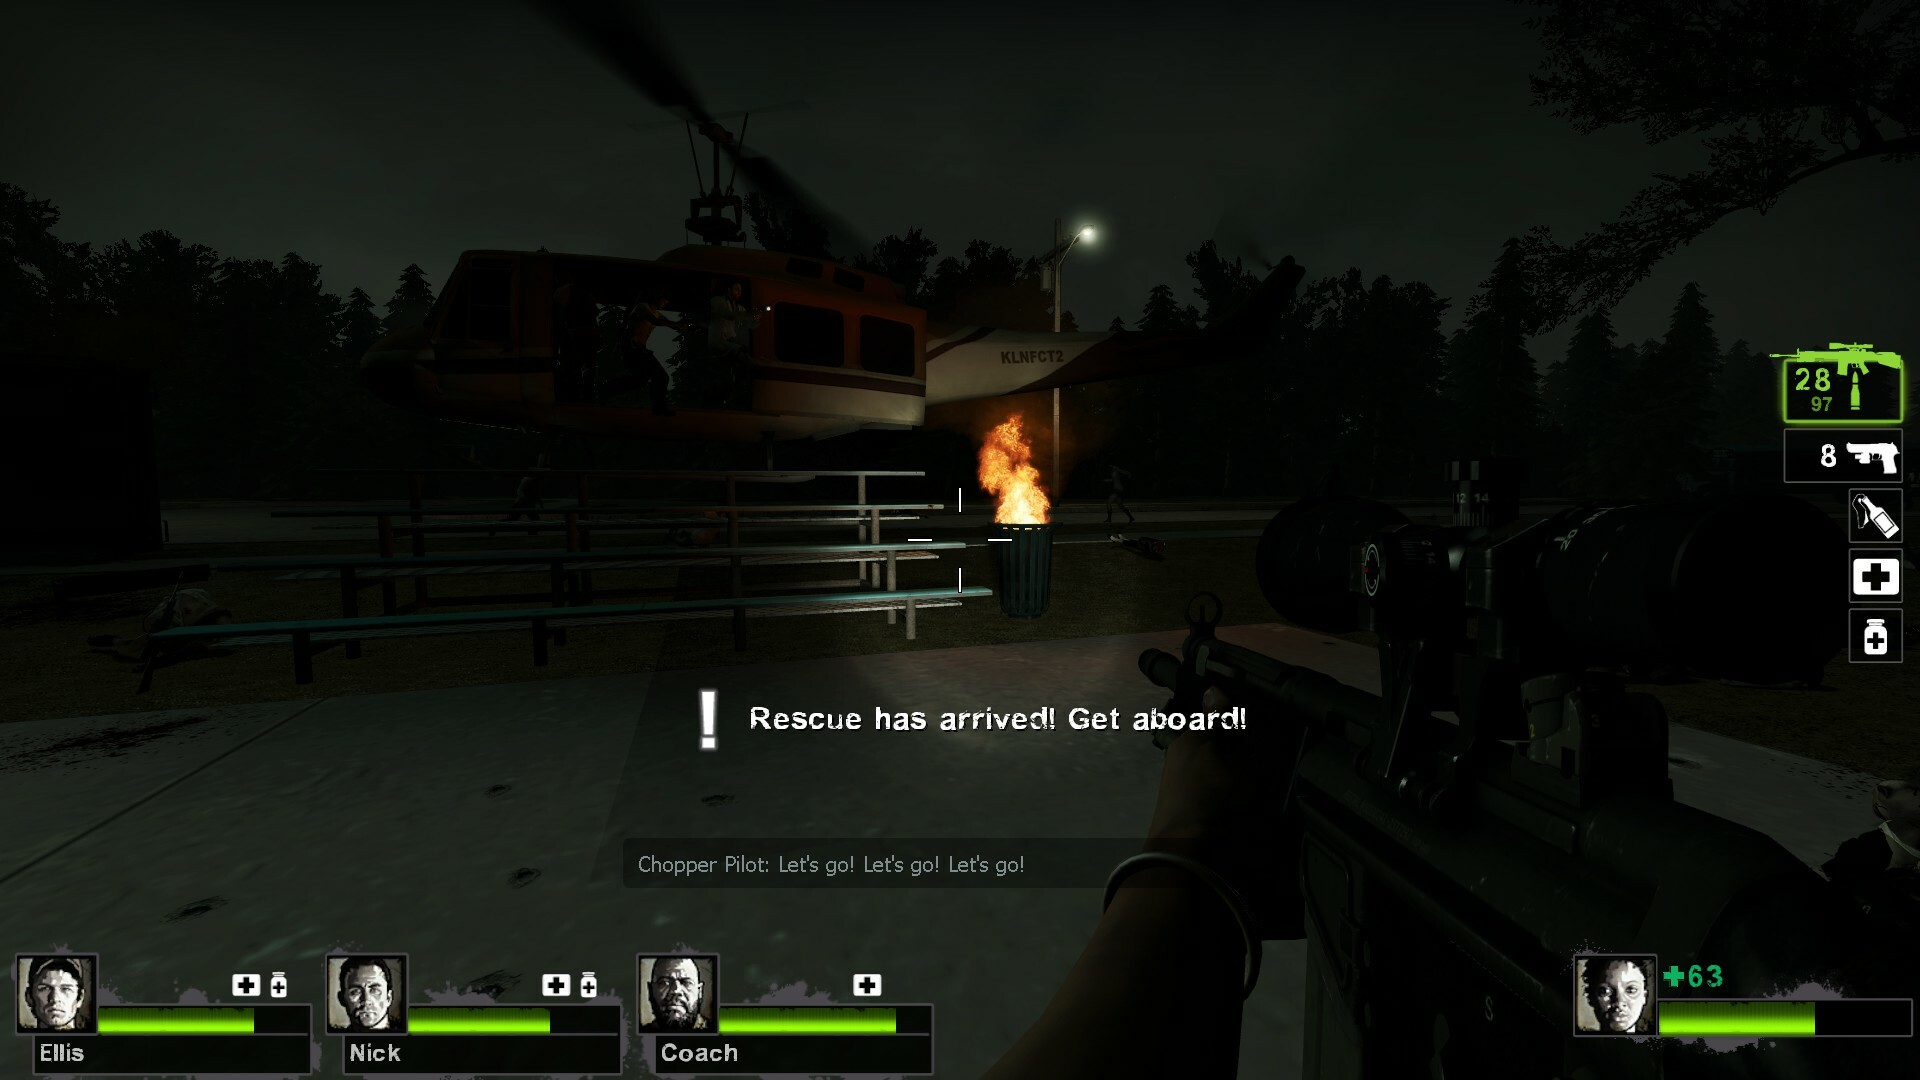 When rescue arrives via helicopter, players must enter to end the level and the campaign.